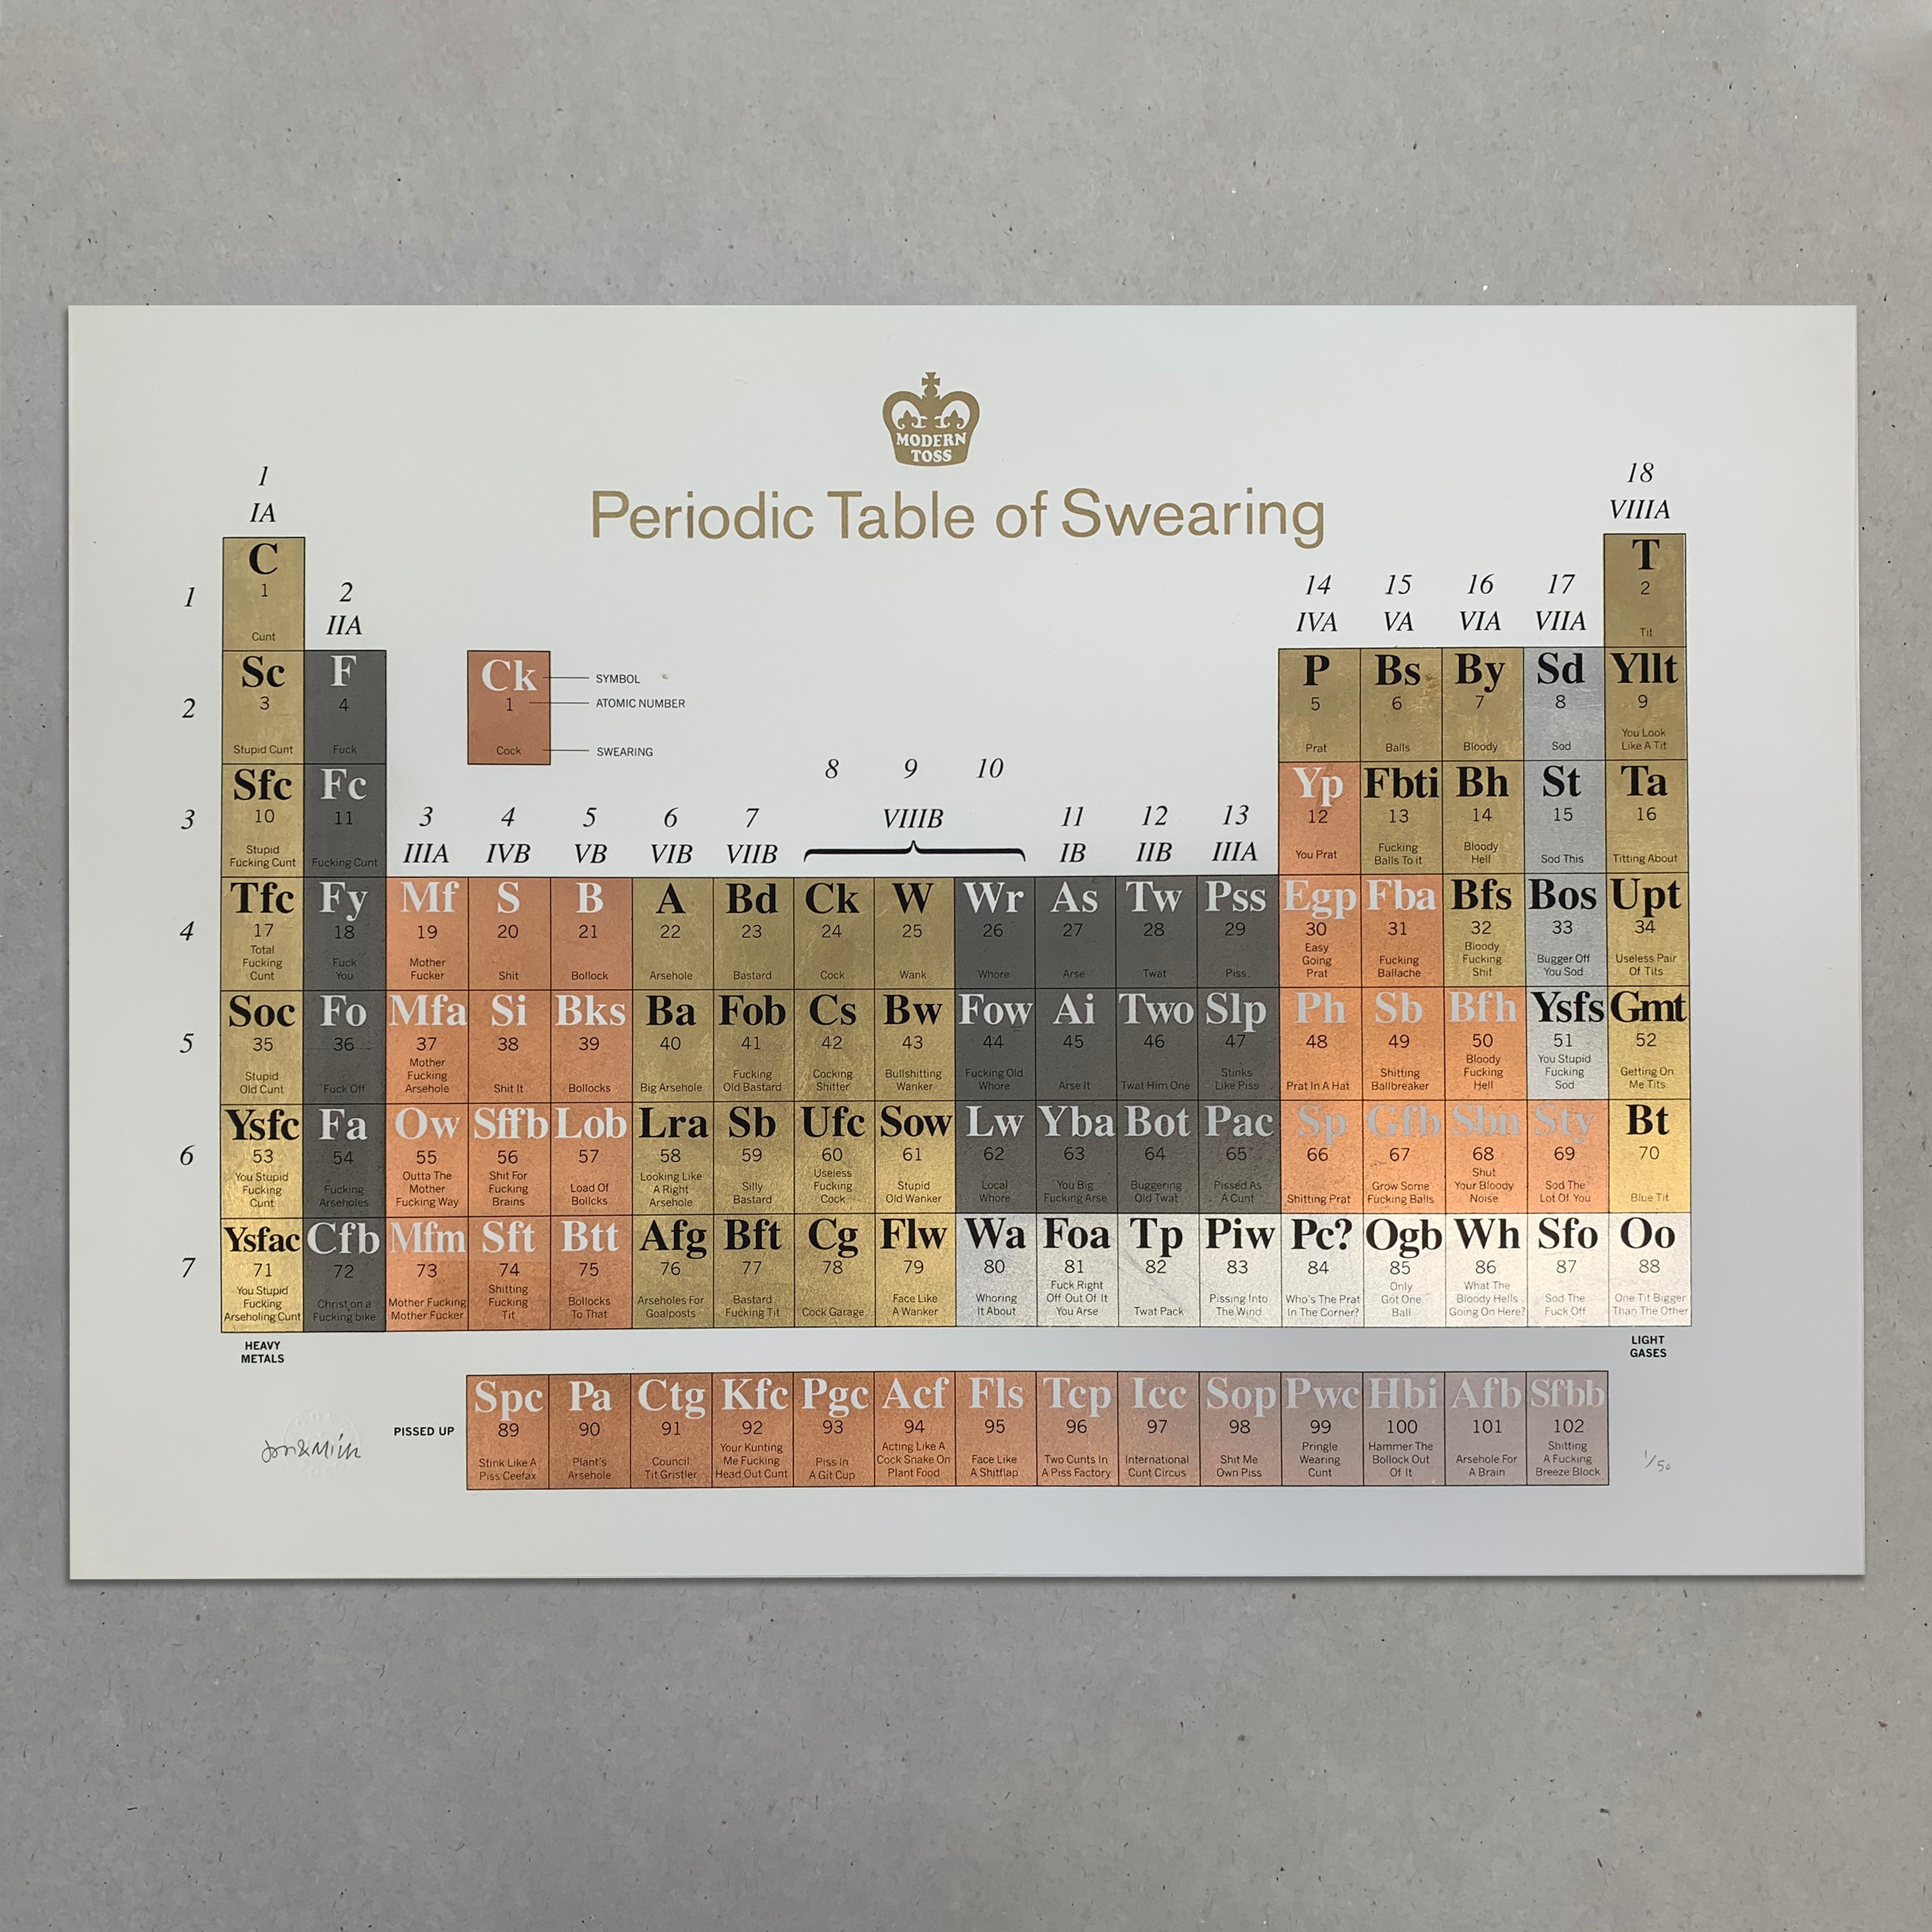 Periodic Table of Swearing Heavy Metals